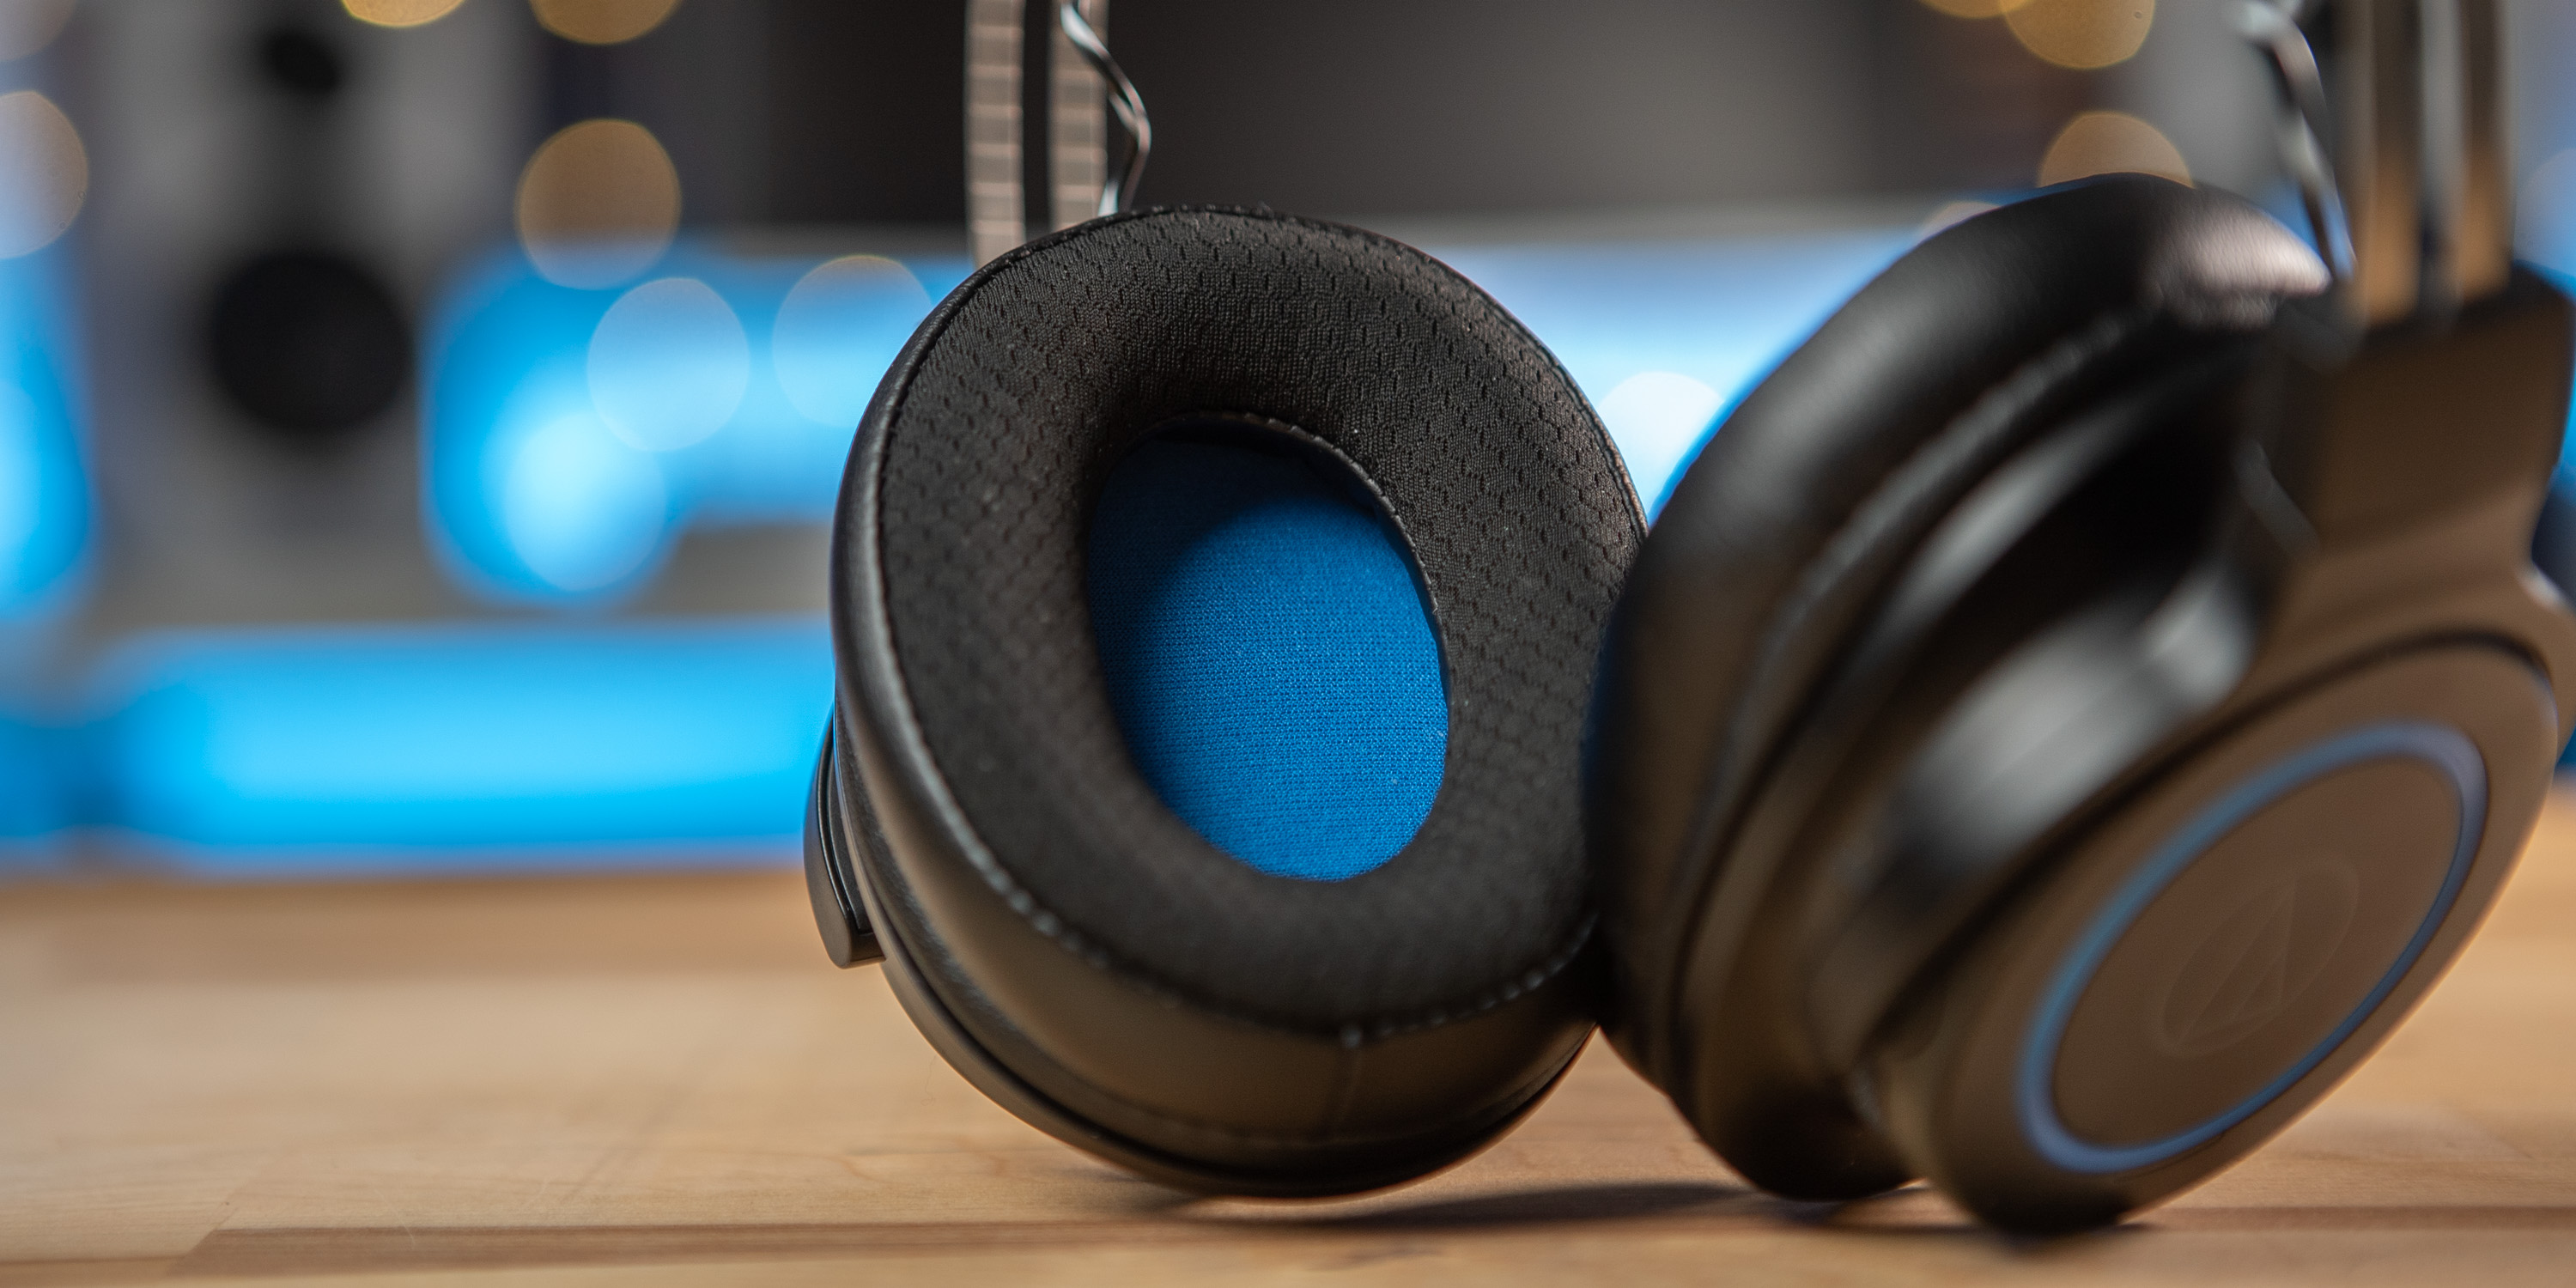 Earcup of the ATH-G1WL